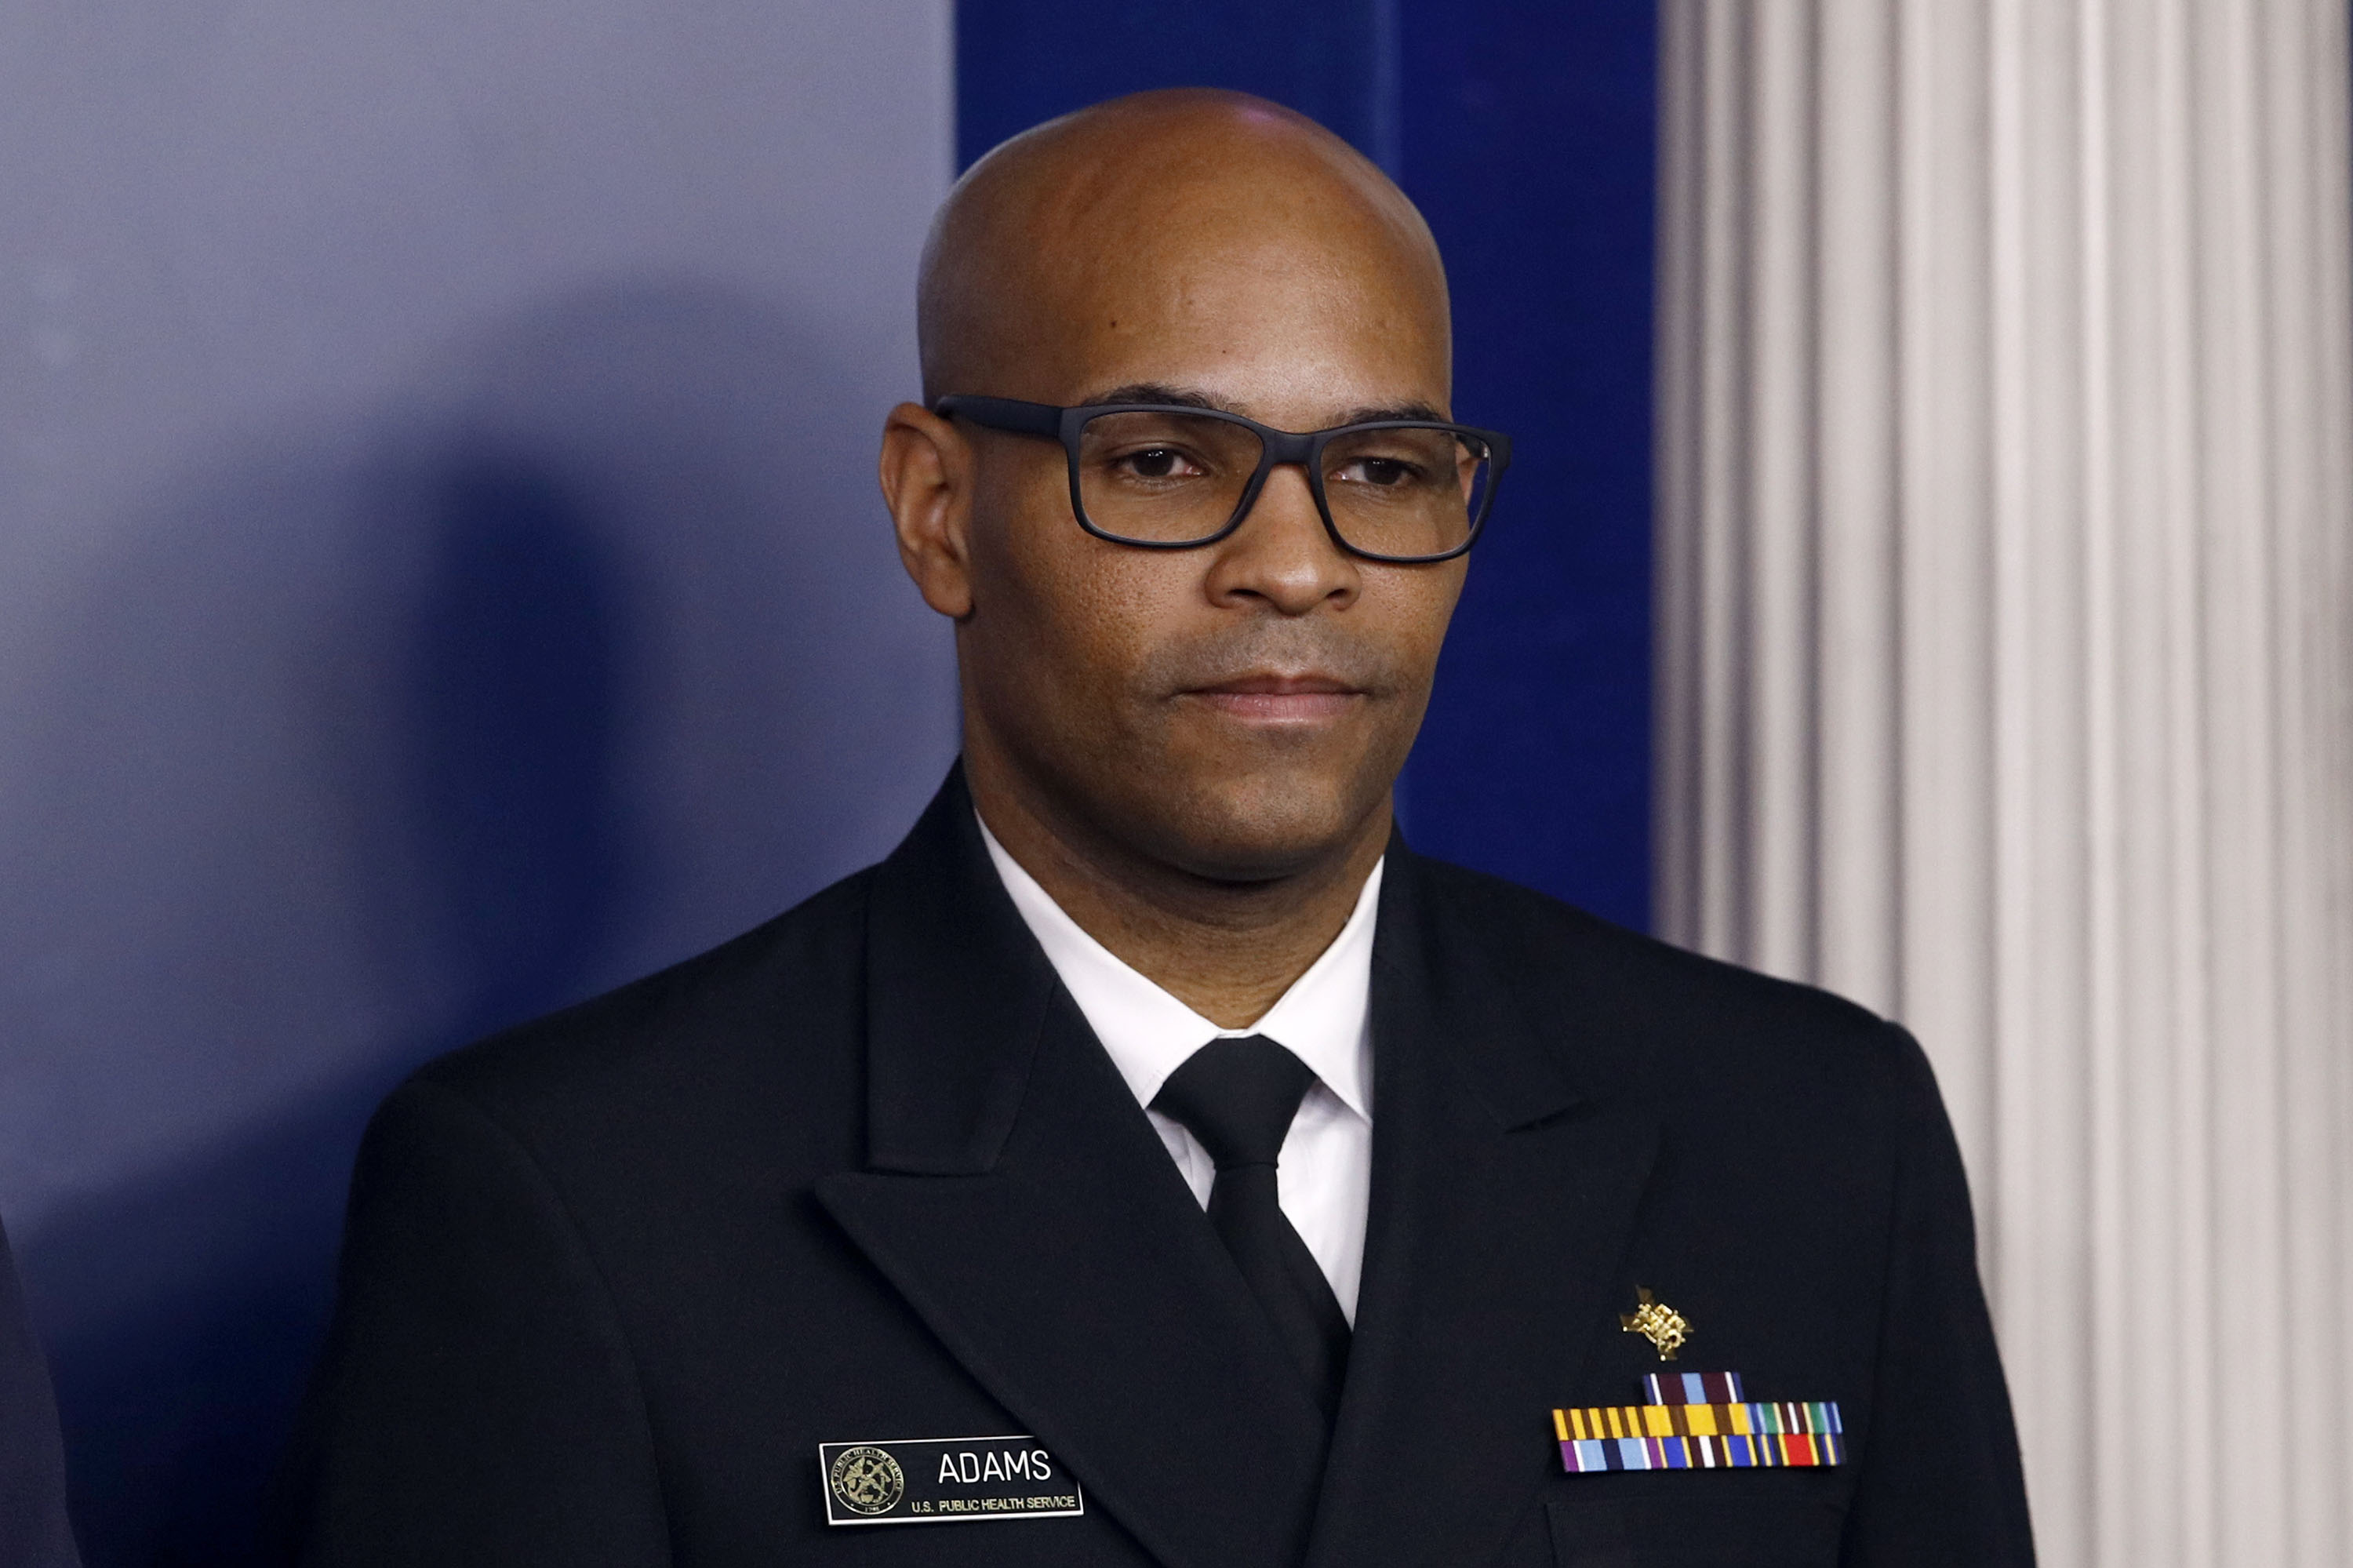 US Surgeon General Dr. Jerome Adams attends a coronavirus task force briefing at the White House on March 22.